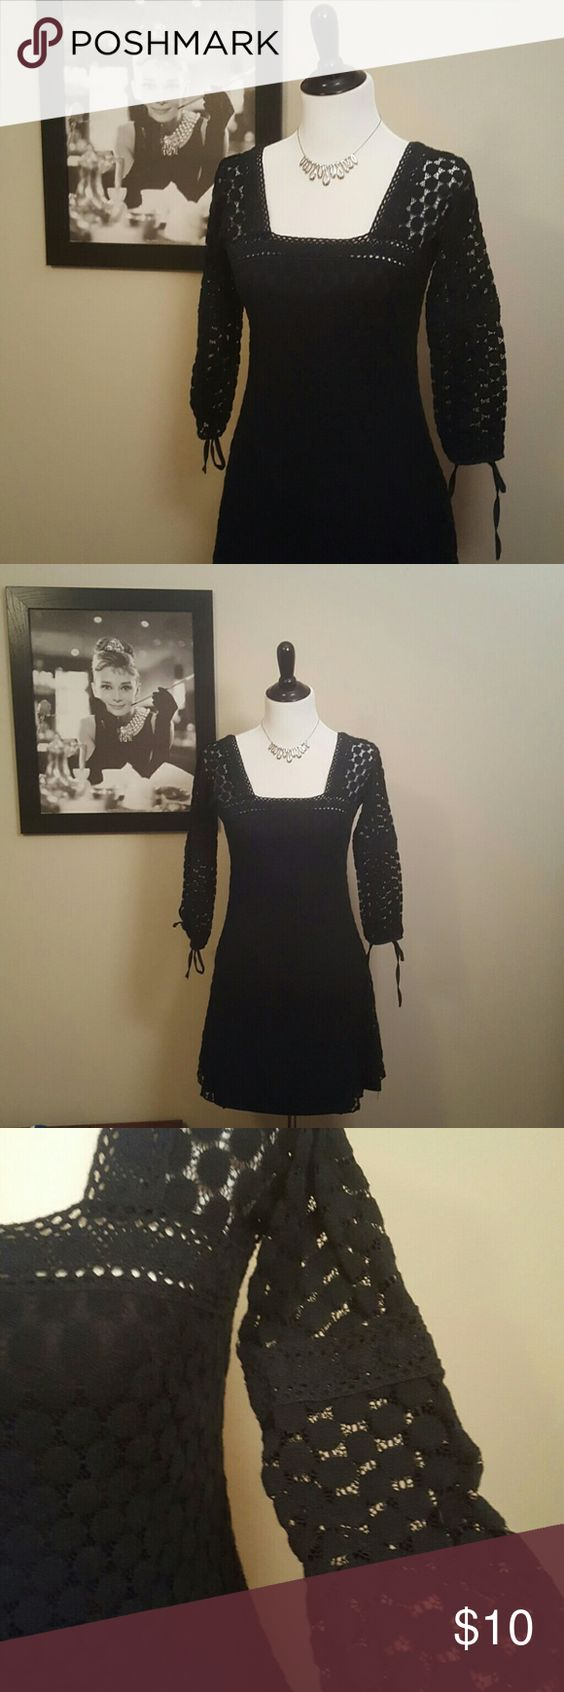 Little Black Dress♥ Lace or crochet like design over a black slip. Ties at the 3/4 length sleeves Buttons in the back, square neck line. Good condition. No trade Make an offer! solitaire  Dresses Mini